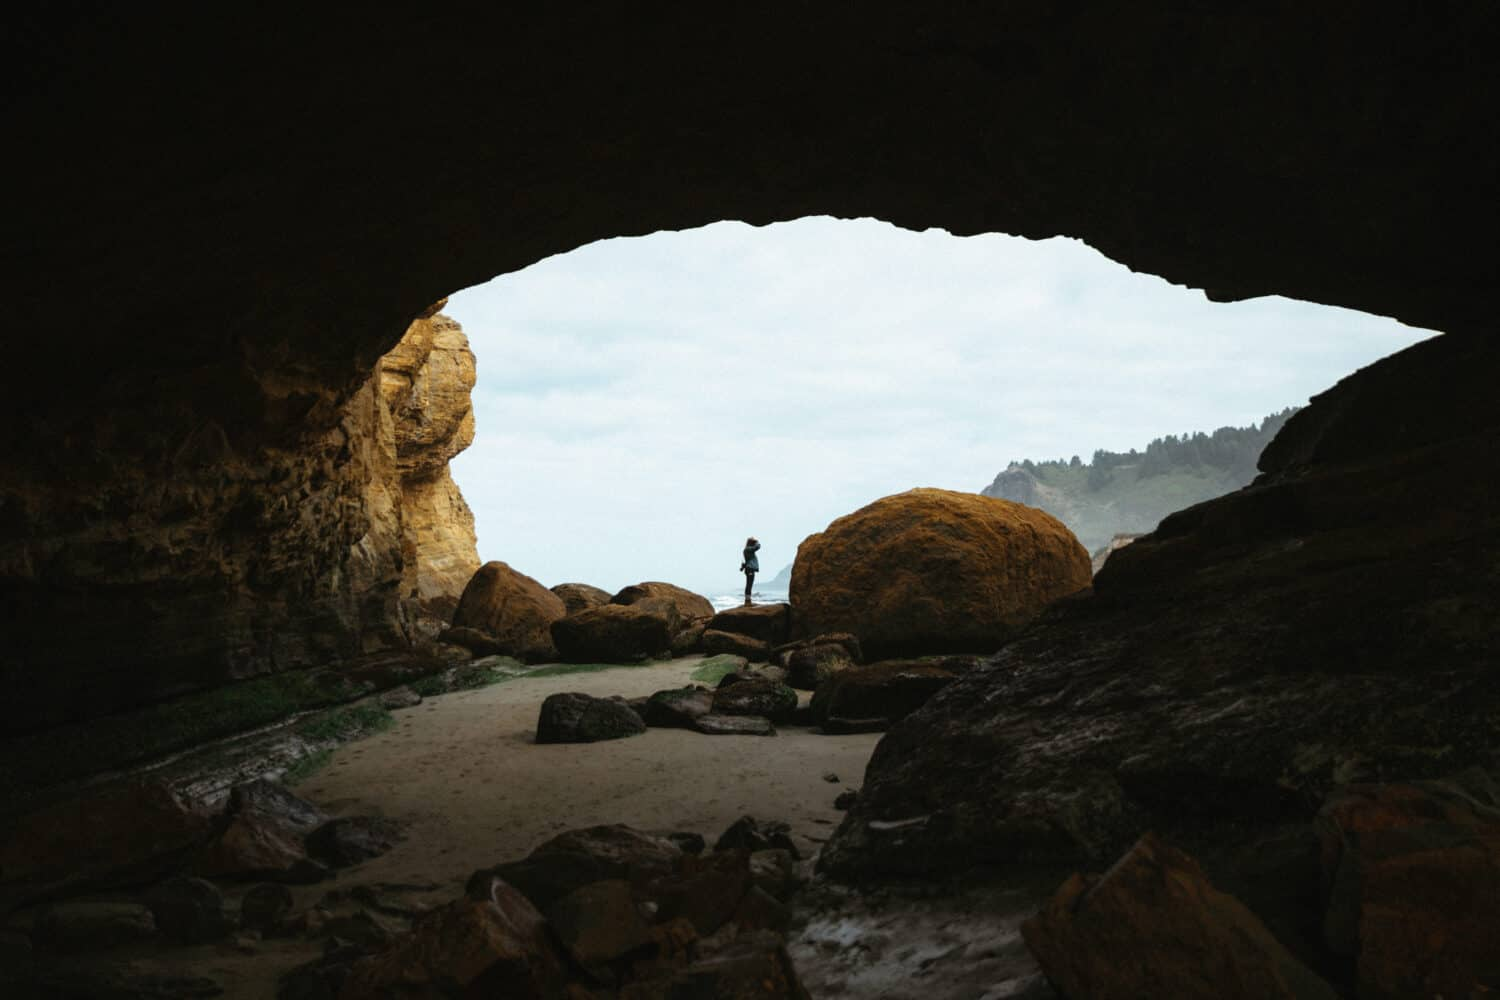 Berty Mandagie at Devil's Punch Bowl State Scenic Area on the Oregon Coast